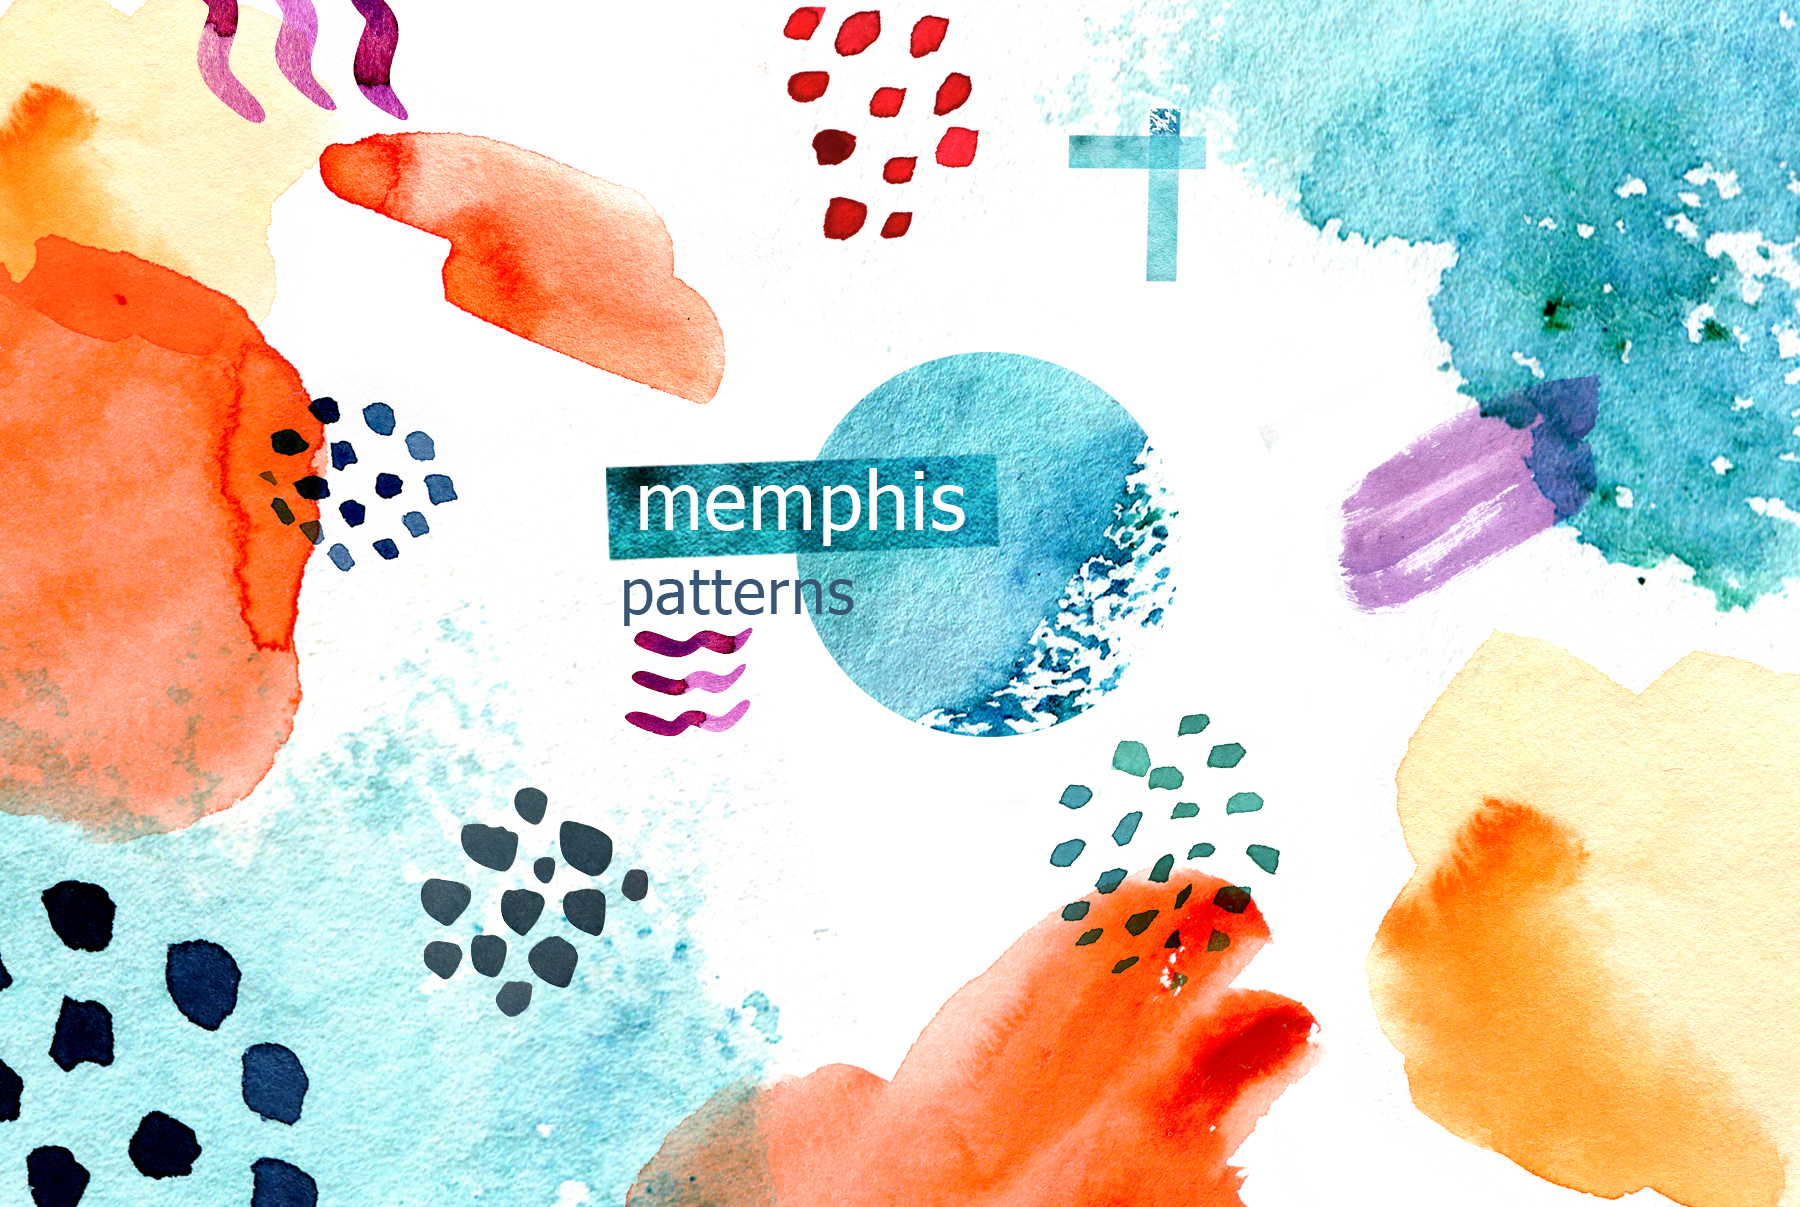 Watercolor memphis patterns & shapes example image 9